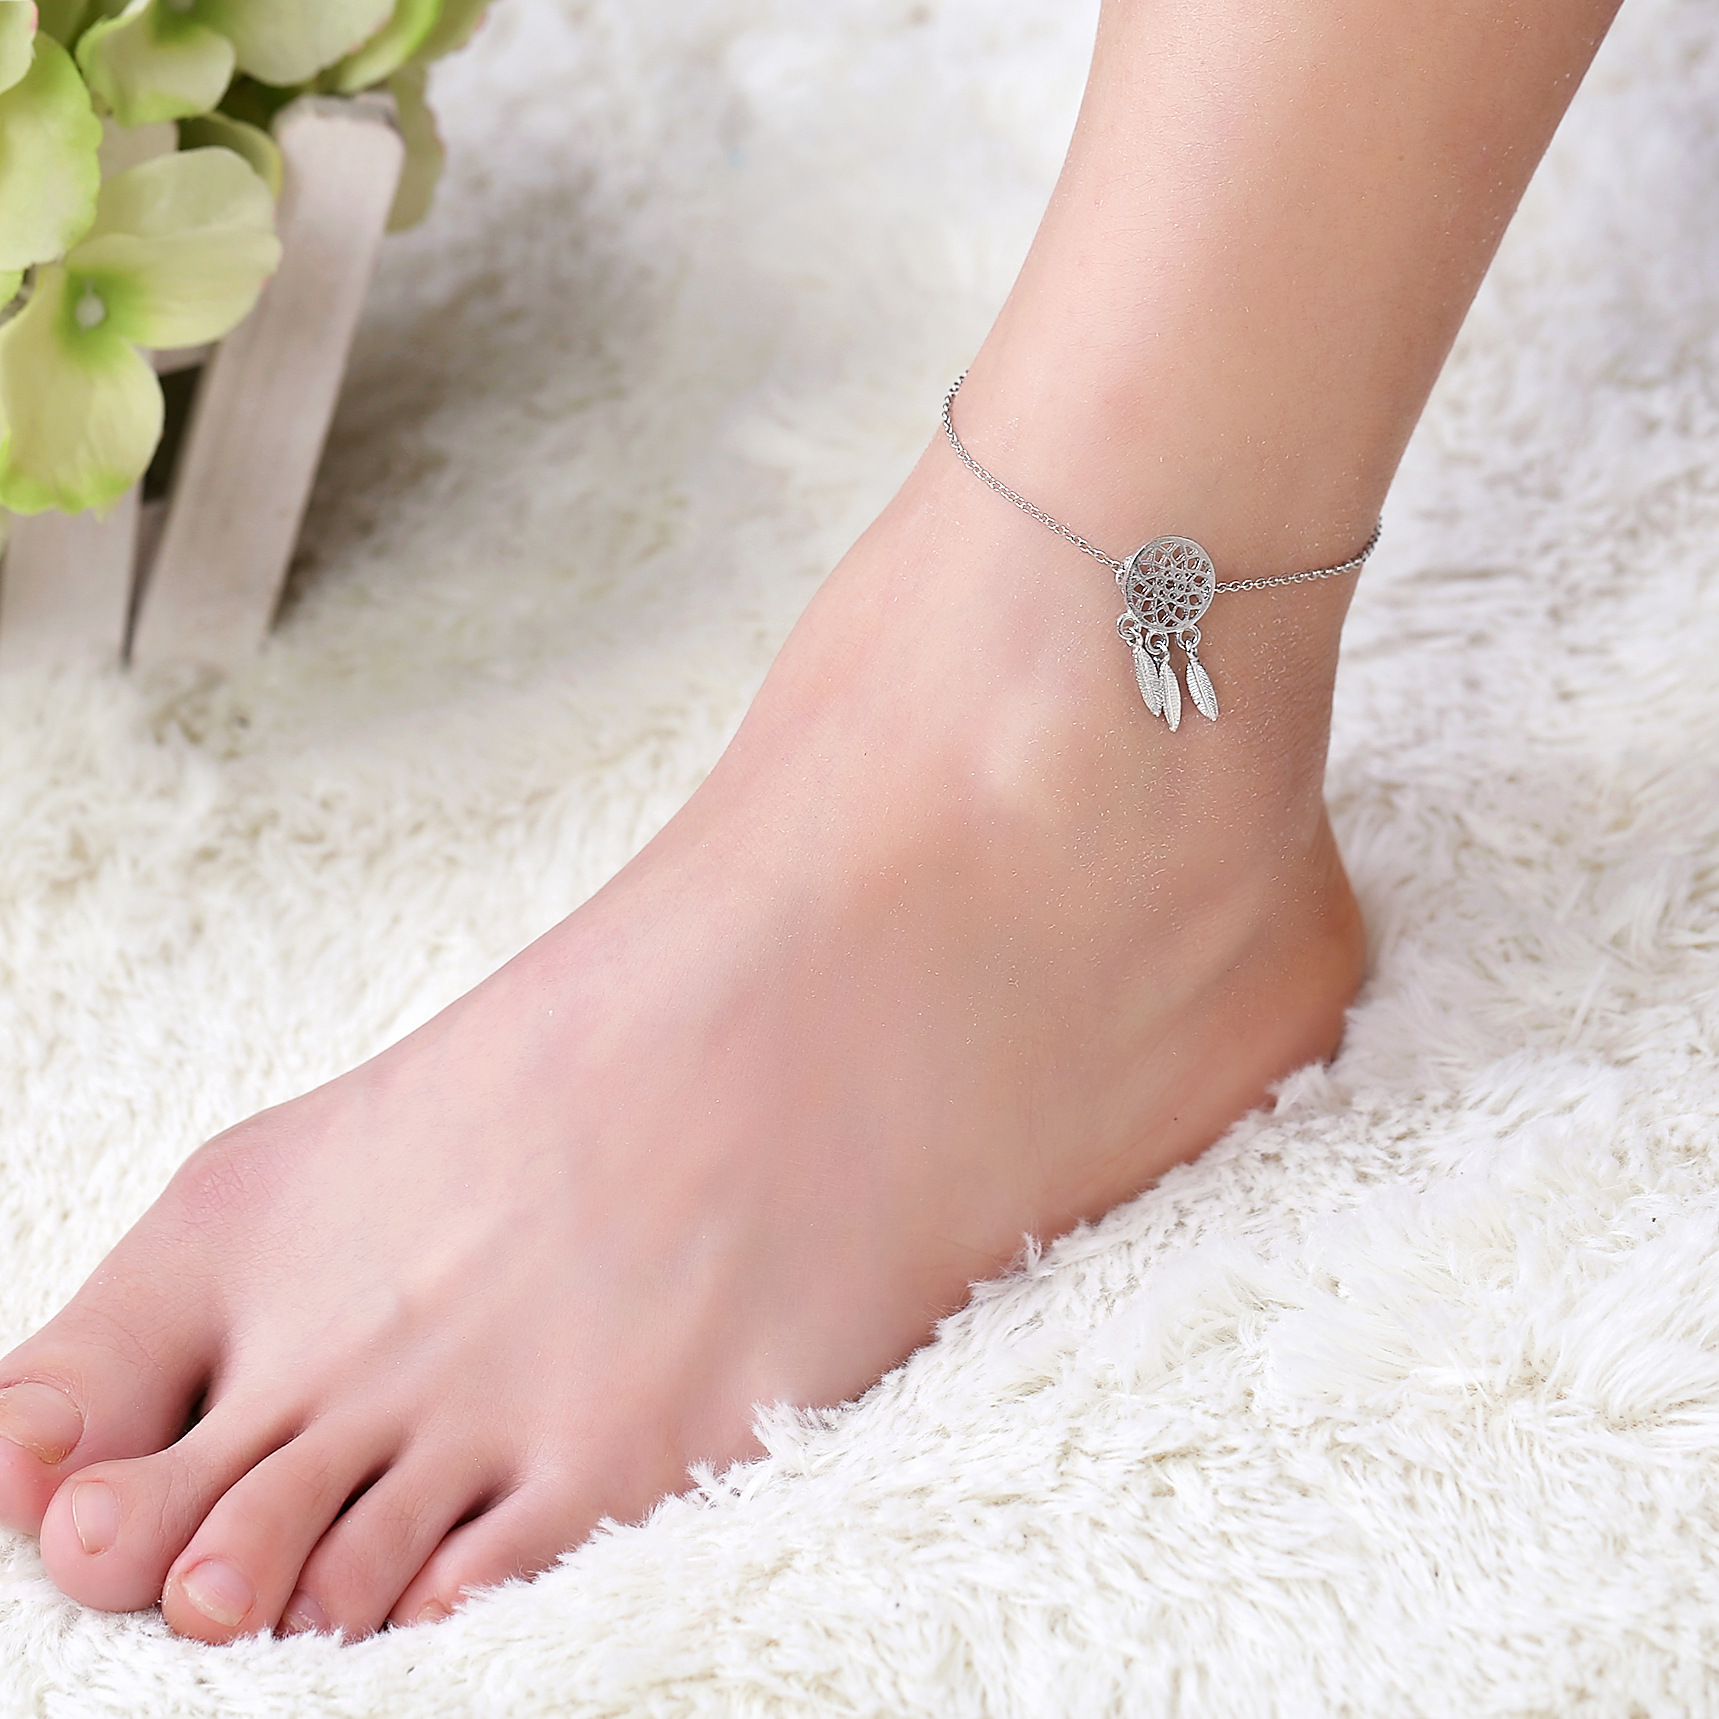 for bkaryn la karyn in p discount women lab moonstone wholesale online anklet dream catcher